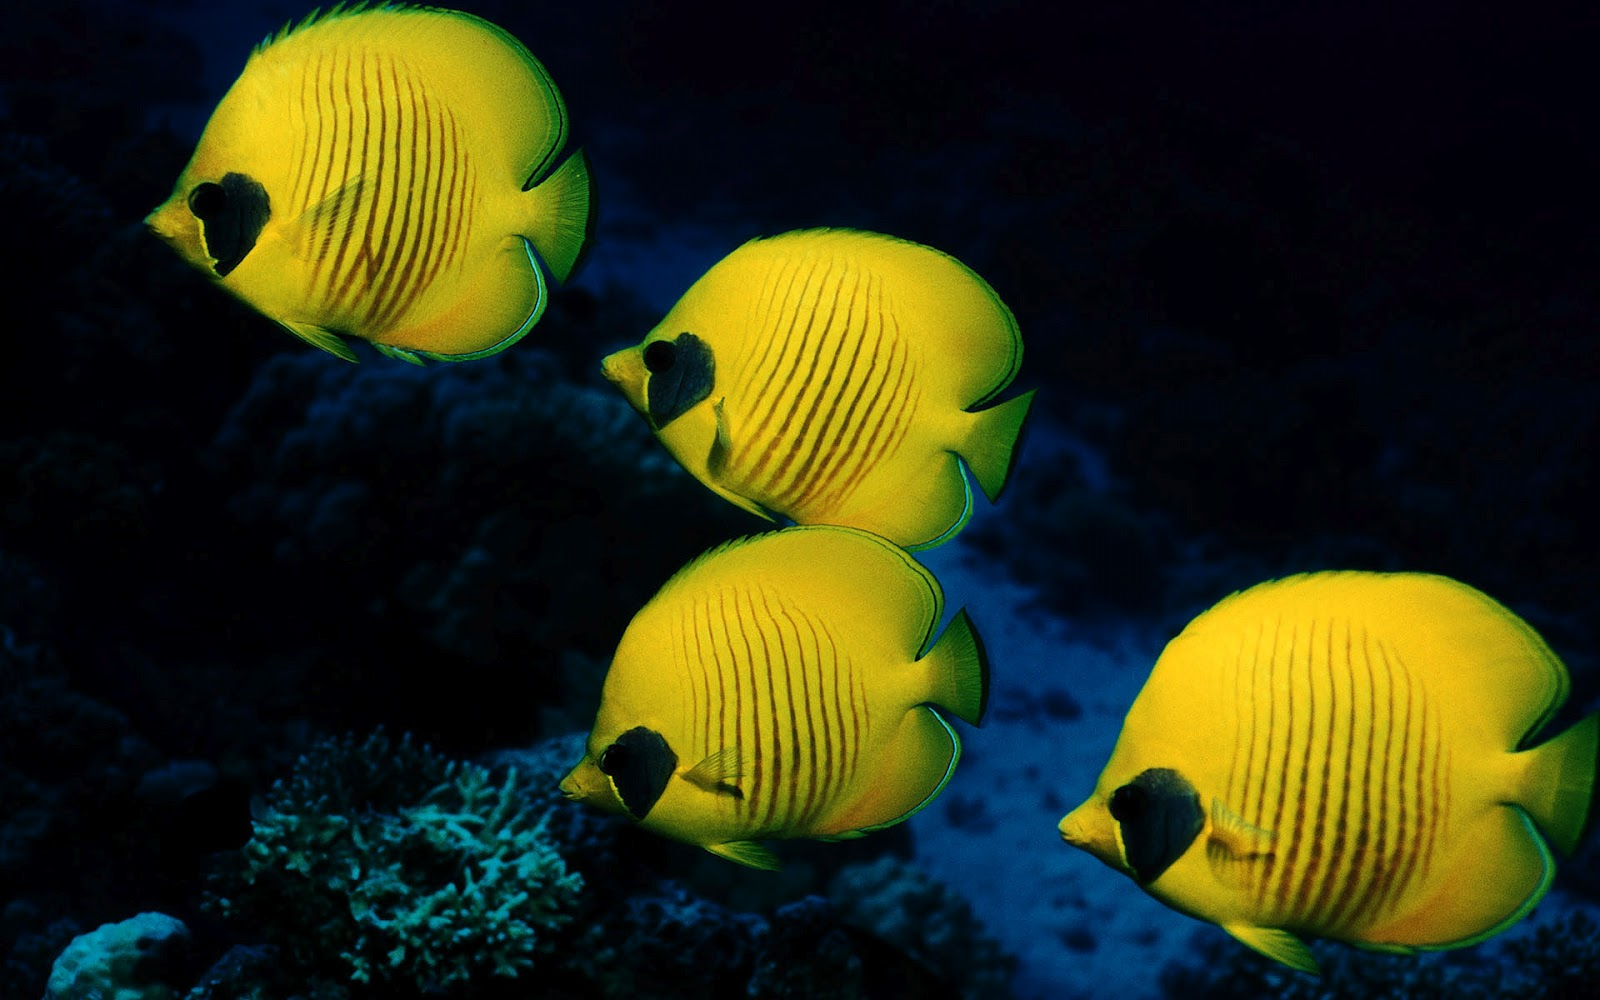 Cute Wallpapers Of All Kind Of Animals Best Wallpapers Collection Best Ocean Life Wallpapers